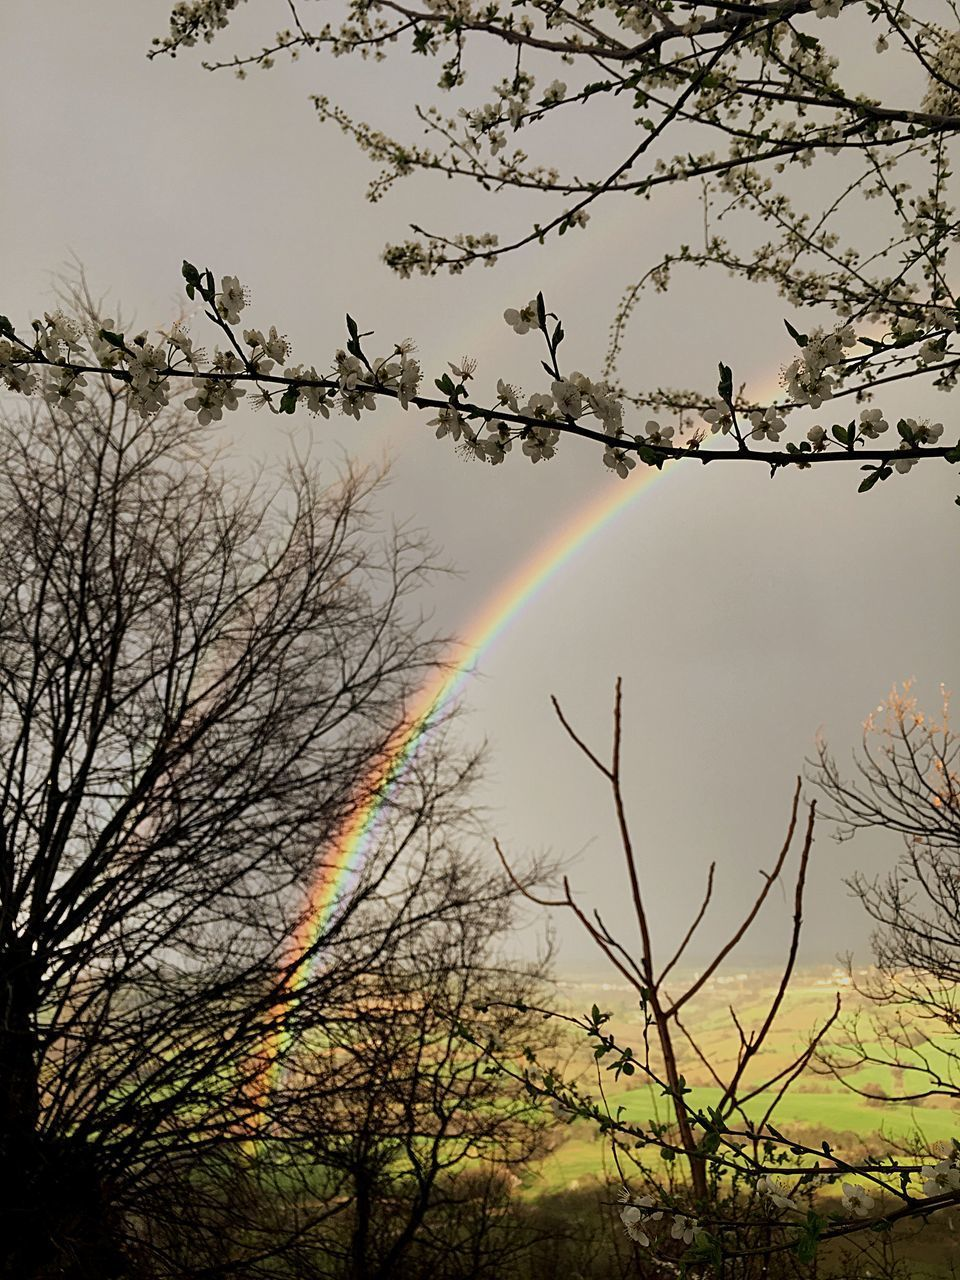 rainbow, double rainbow, tree, nature, bare tree, no people, beauty in nature, outdoors, day, scenics, multi colored, sky, branch, flying, spectrum, bird, bubble wand